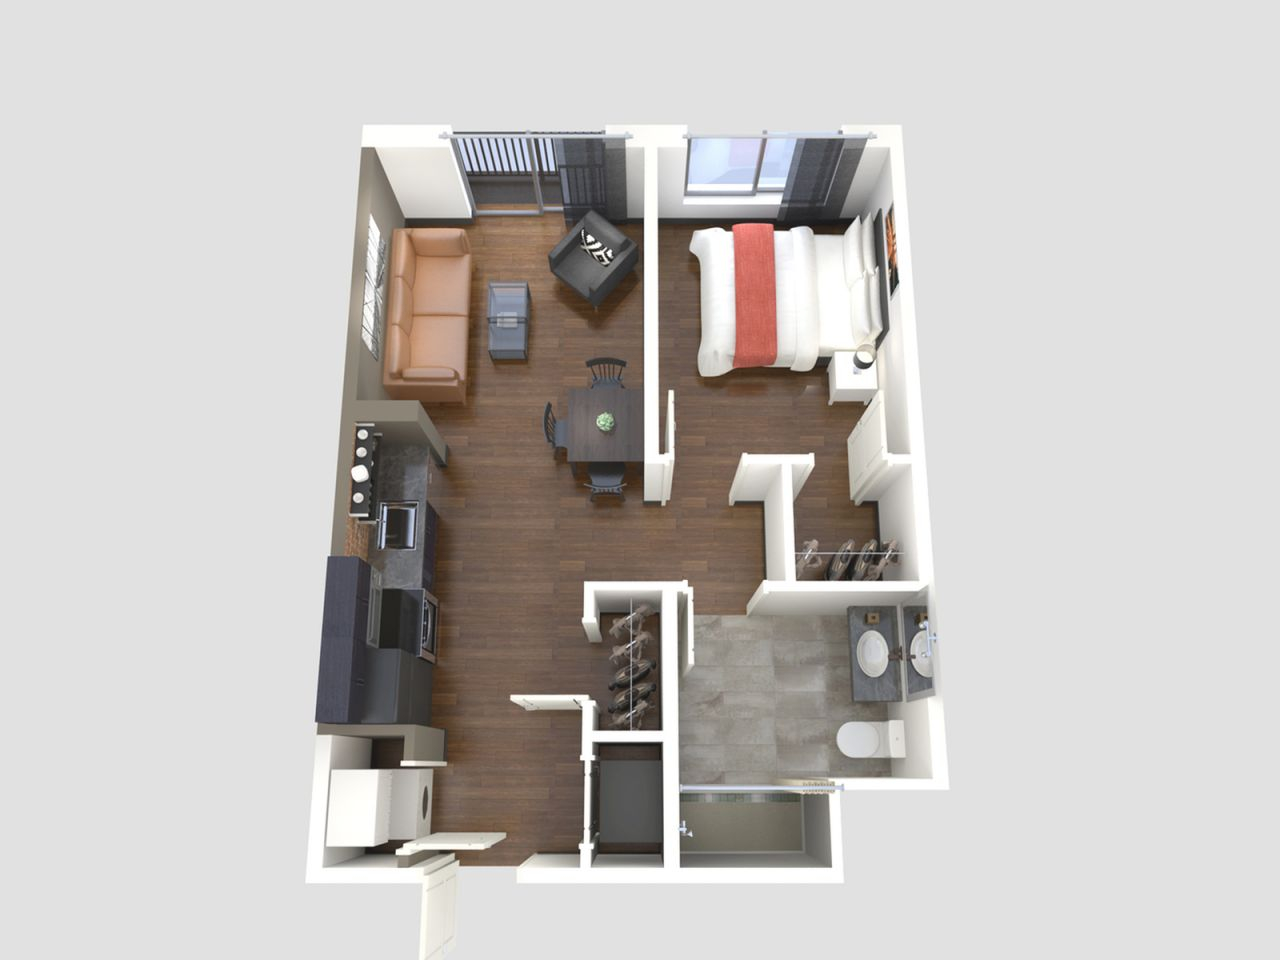 1 Bed / 1 Bath Apartment In Springfield Mo | Galloway Creek pertaining to One Bedroom Apartment Floor Plans